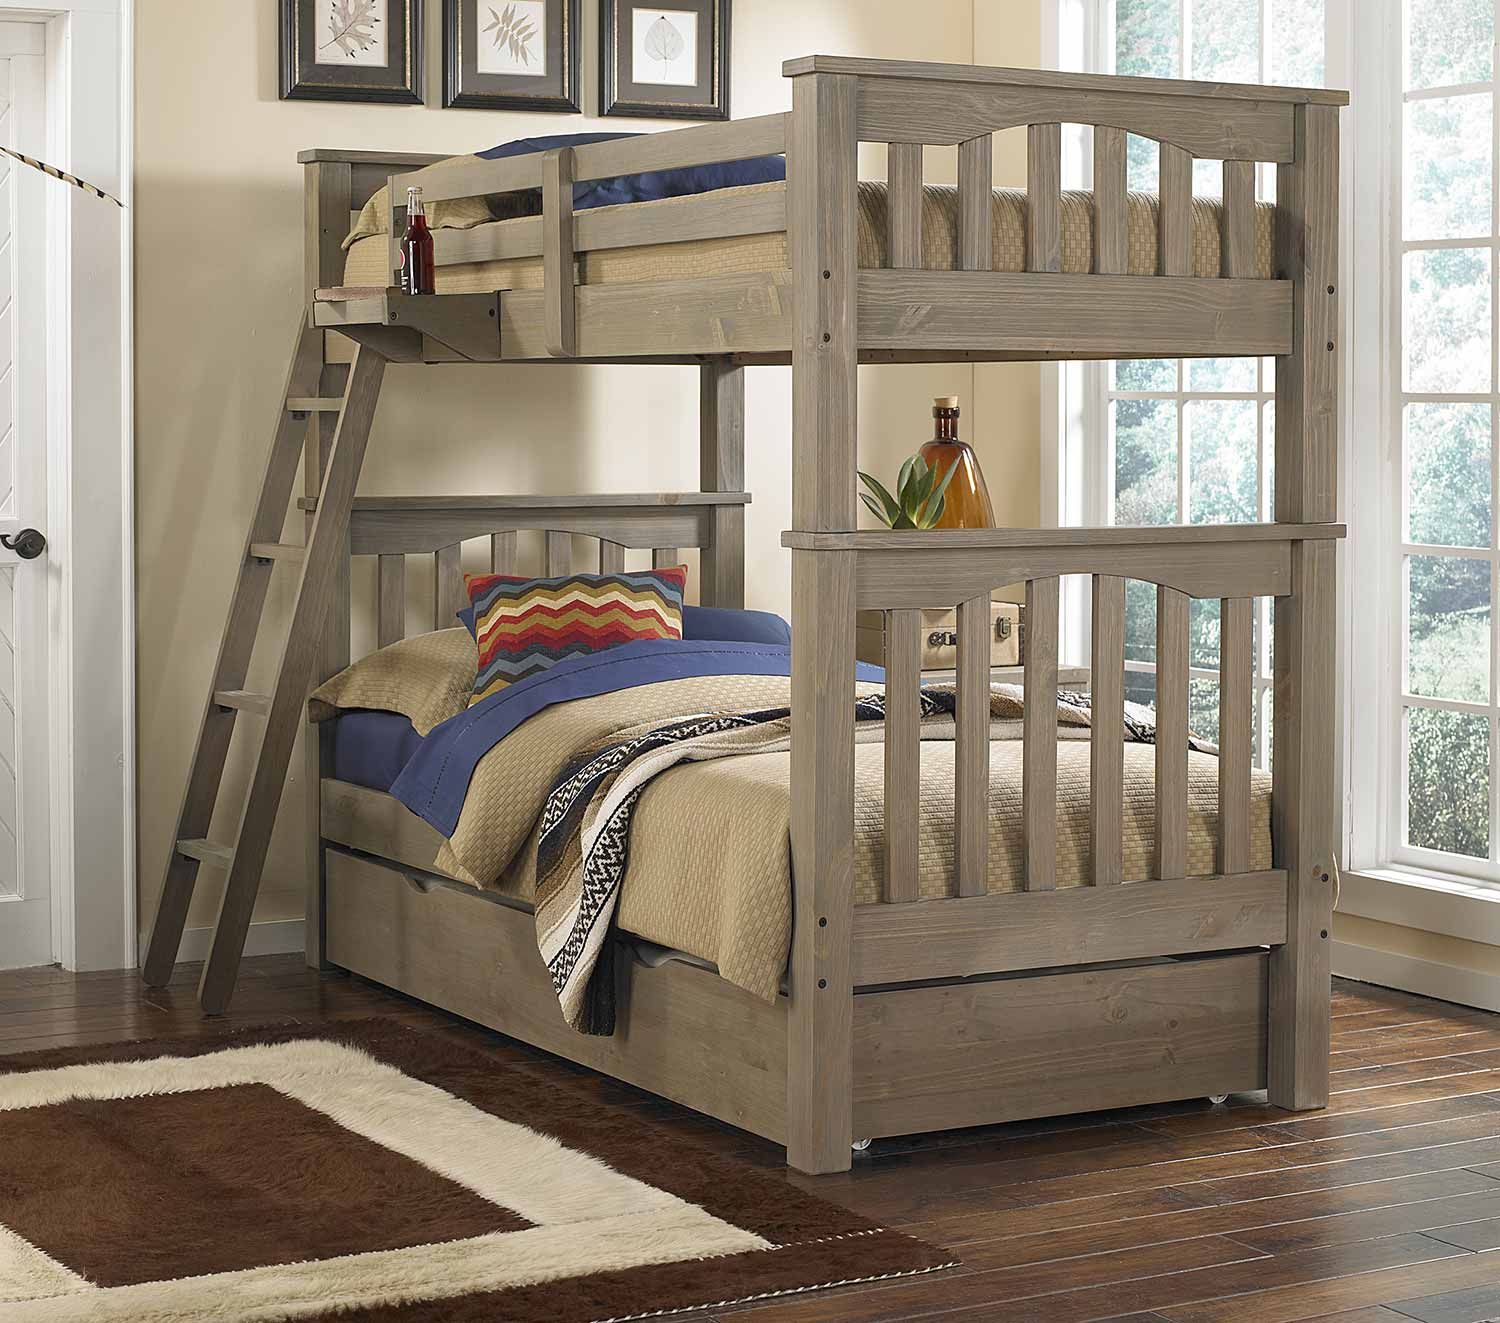 NE Kids Highlands Harper Twin/Twin Bunk With Trundle - Driftwood